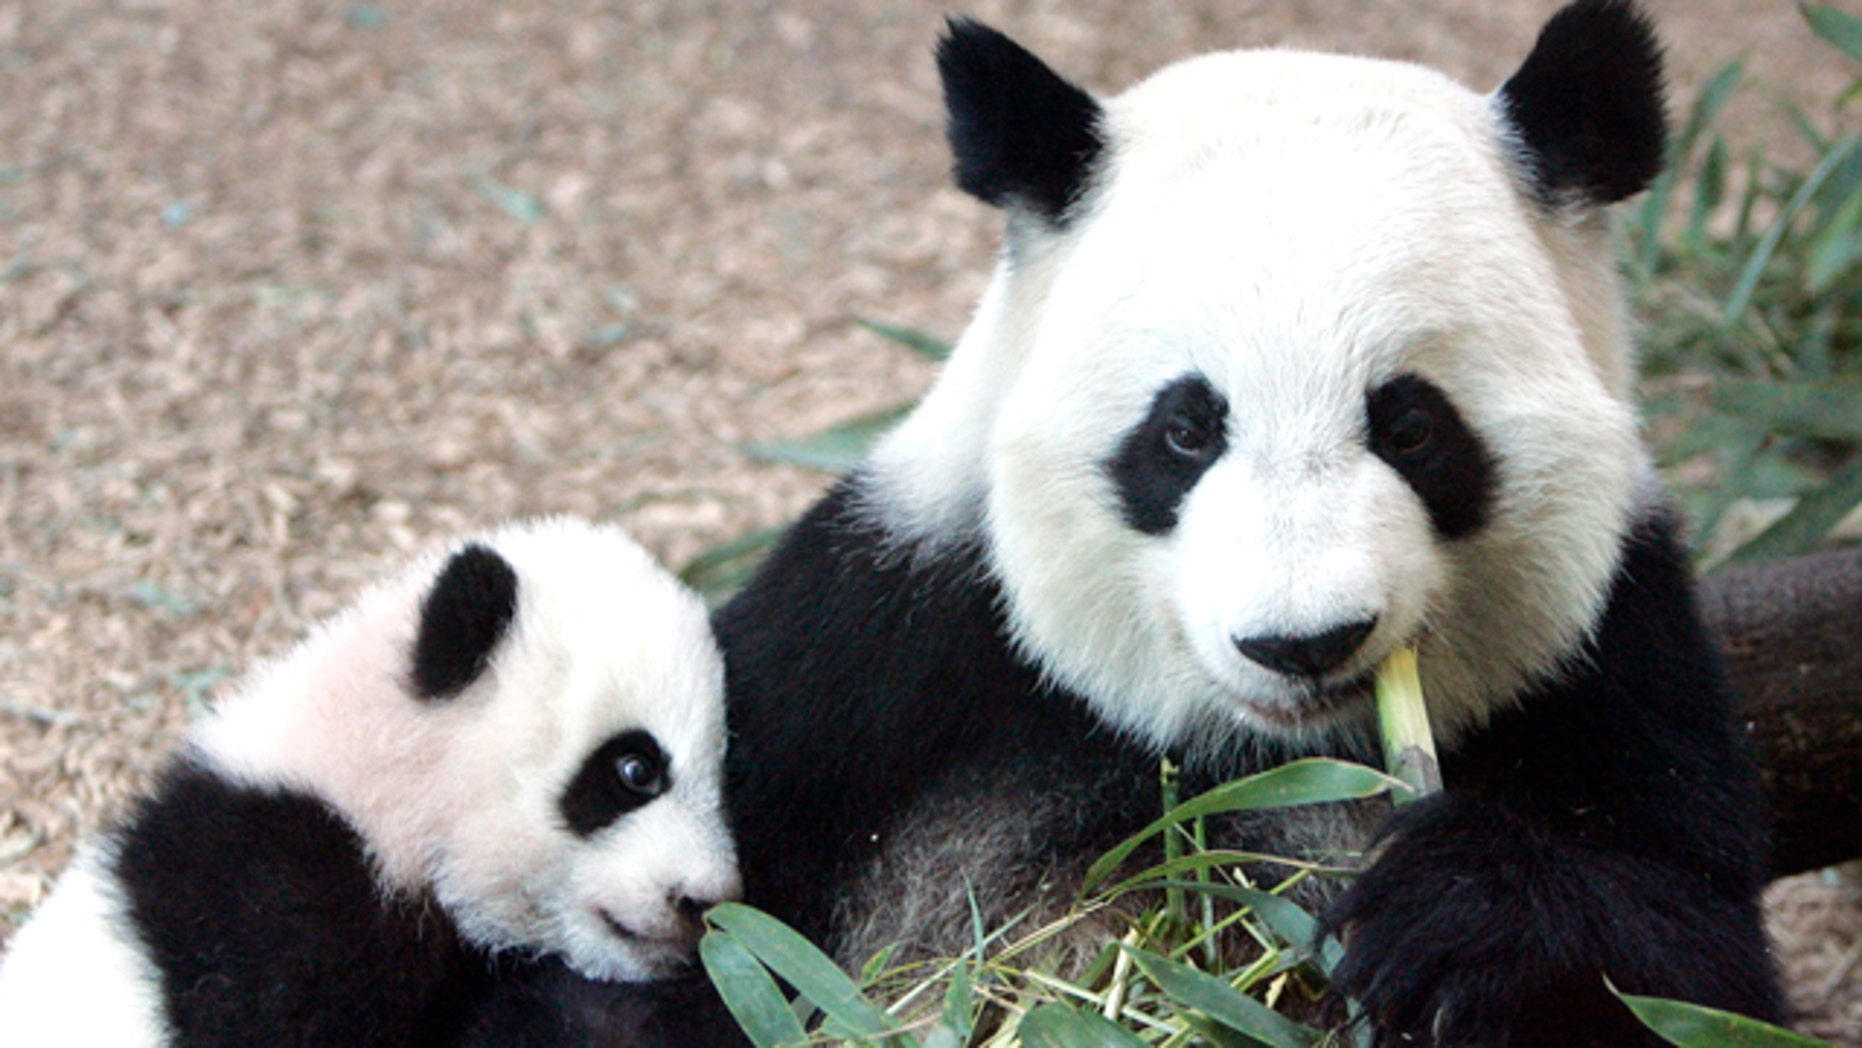 In this Jan. 12, 2007, file photo, Giant Panda panda mother Lun Lun (right) eats bamboo as her cub Mei Lan explores her new habitat at Zoo Atlanta. Zoo officials say Lun Lun has given birth to her third cub at 5:39 a.m. on Wednesday, Nov. 3, 2010 in a specially prepared birthing den. Lun Lun was inseminated with sperm from her partner, Yang Yang, in June after the two failed to mate. The couple's previous cubs were Mei Lan, born in 2006, and Xi Lan, born in 2008.